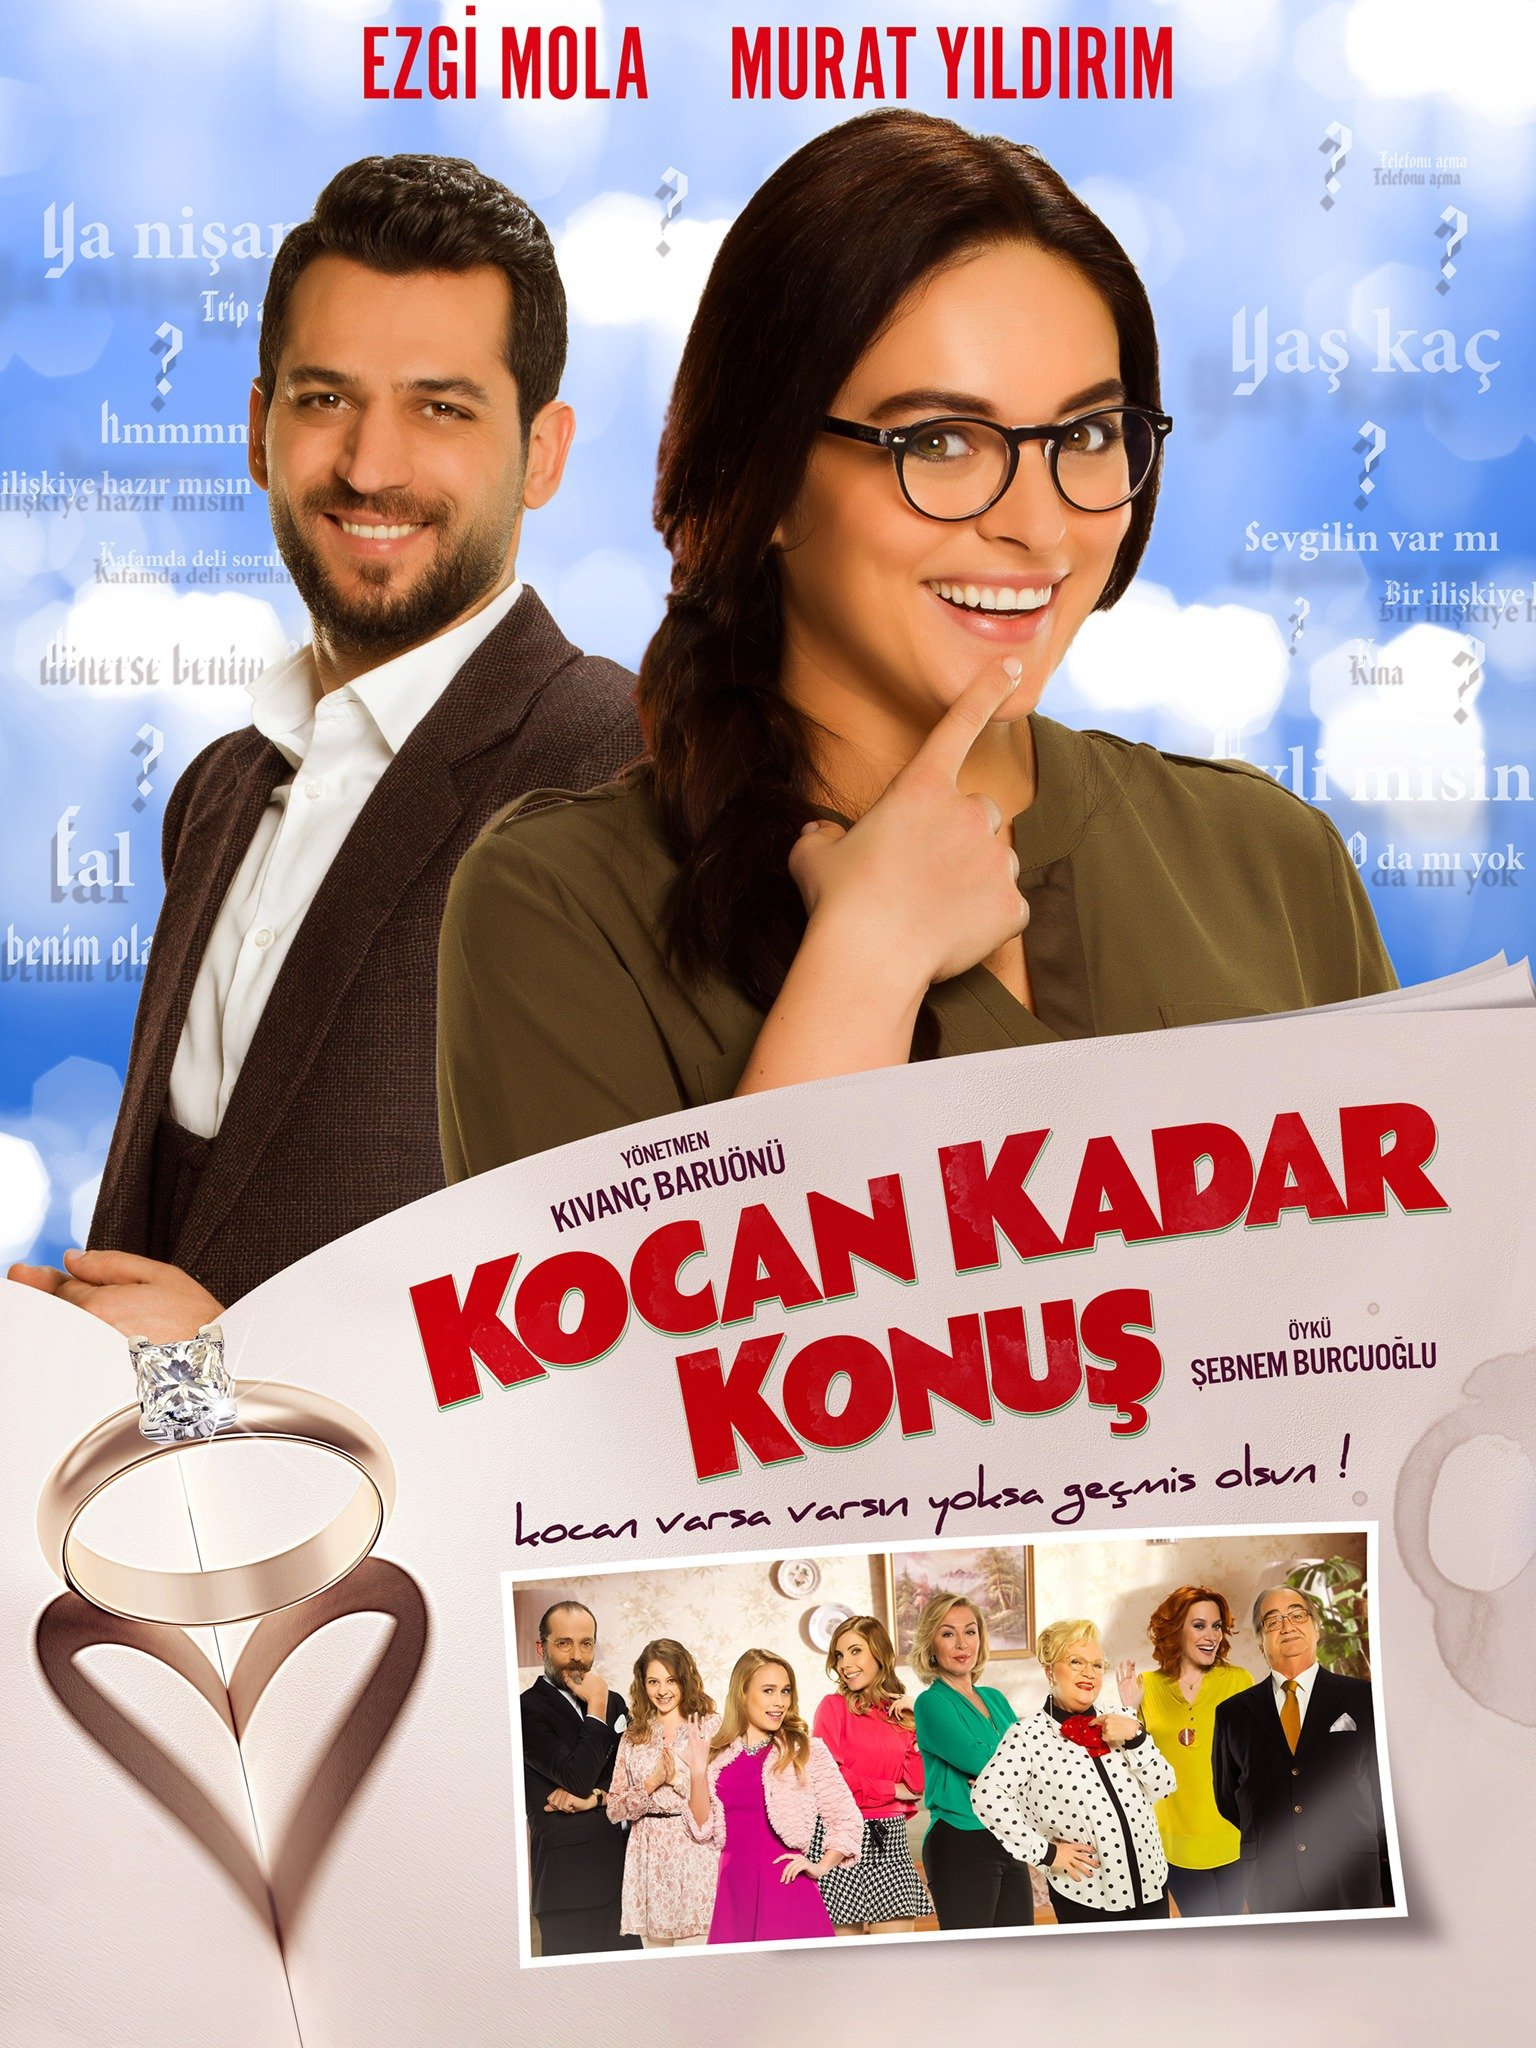 Kocan Kadar Konus (Husband Factor)